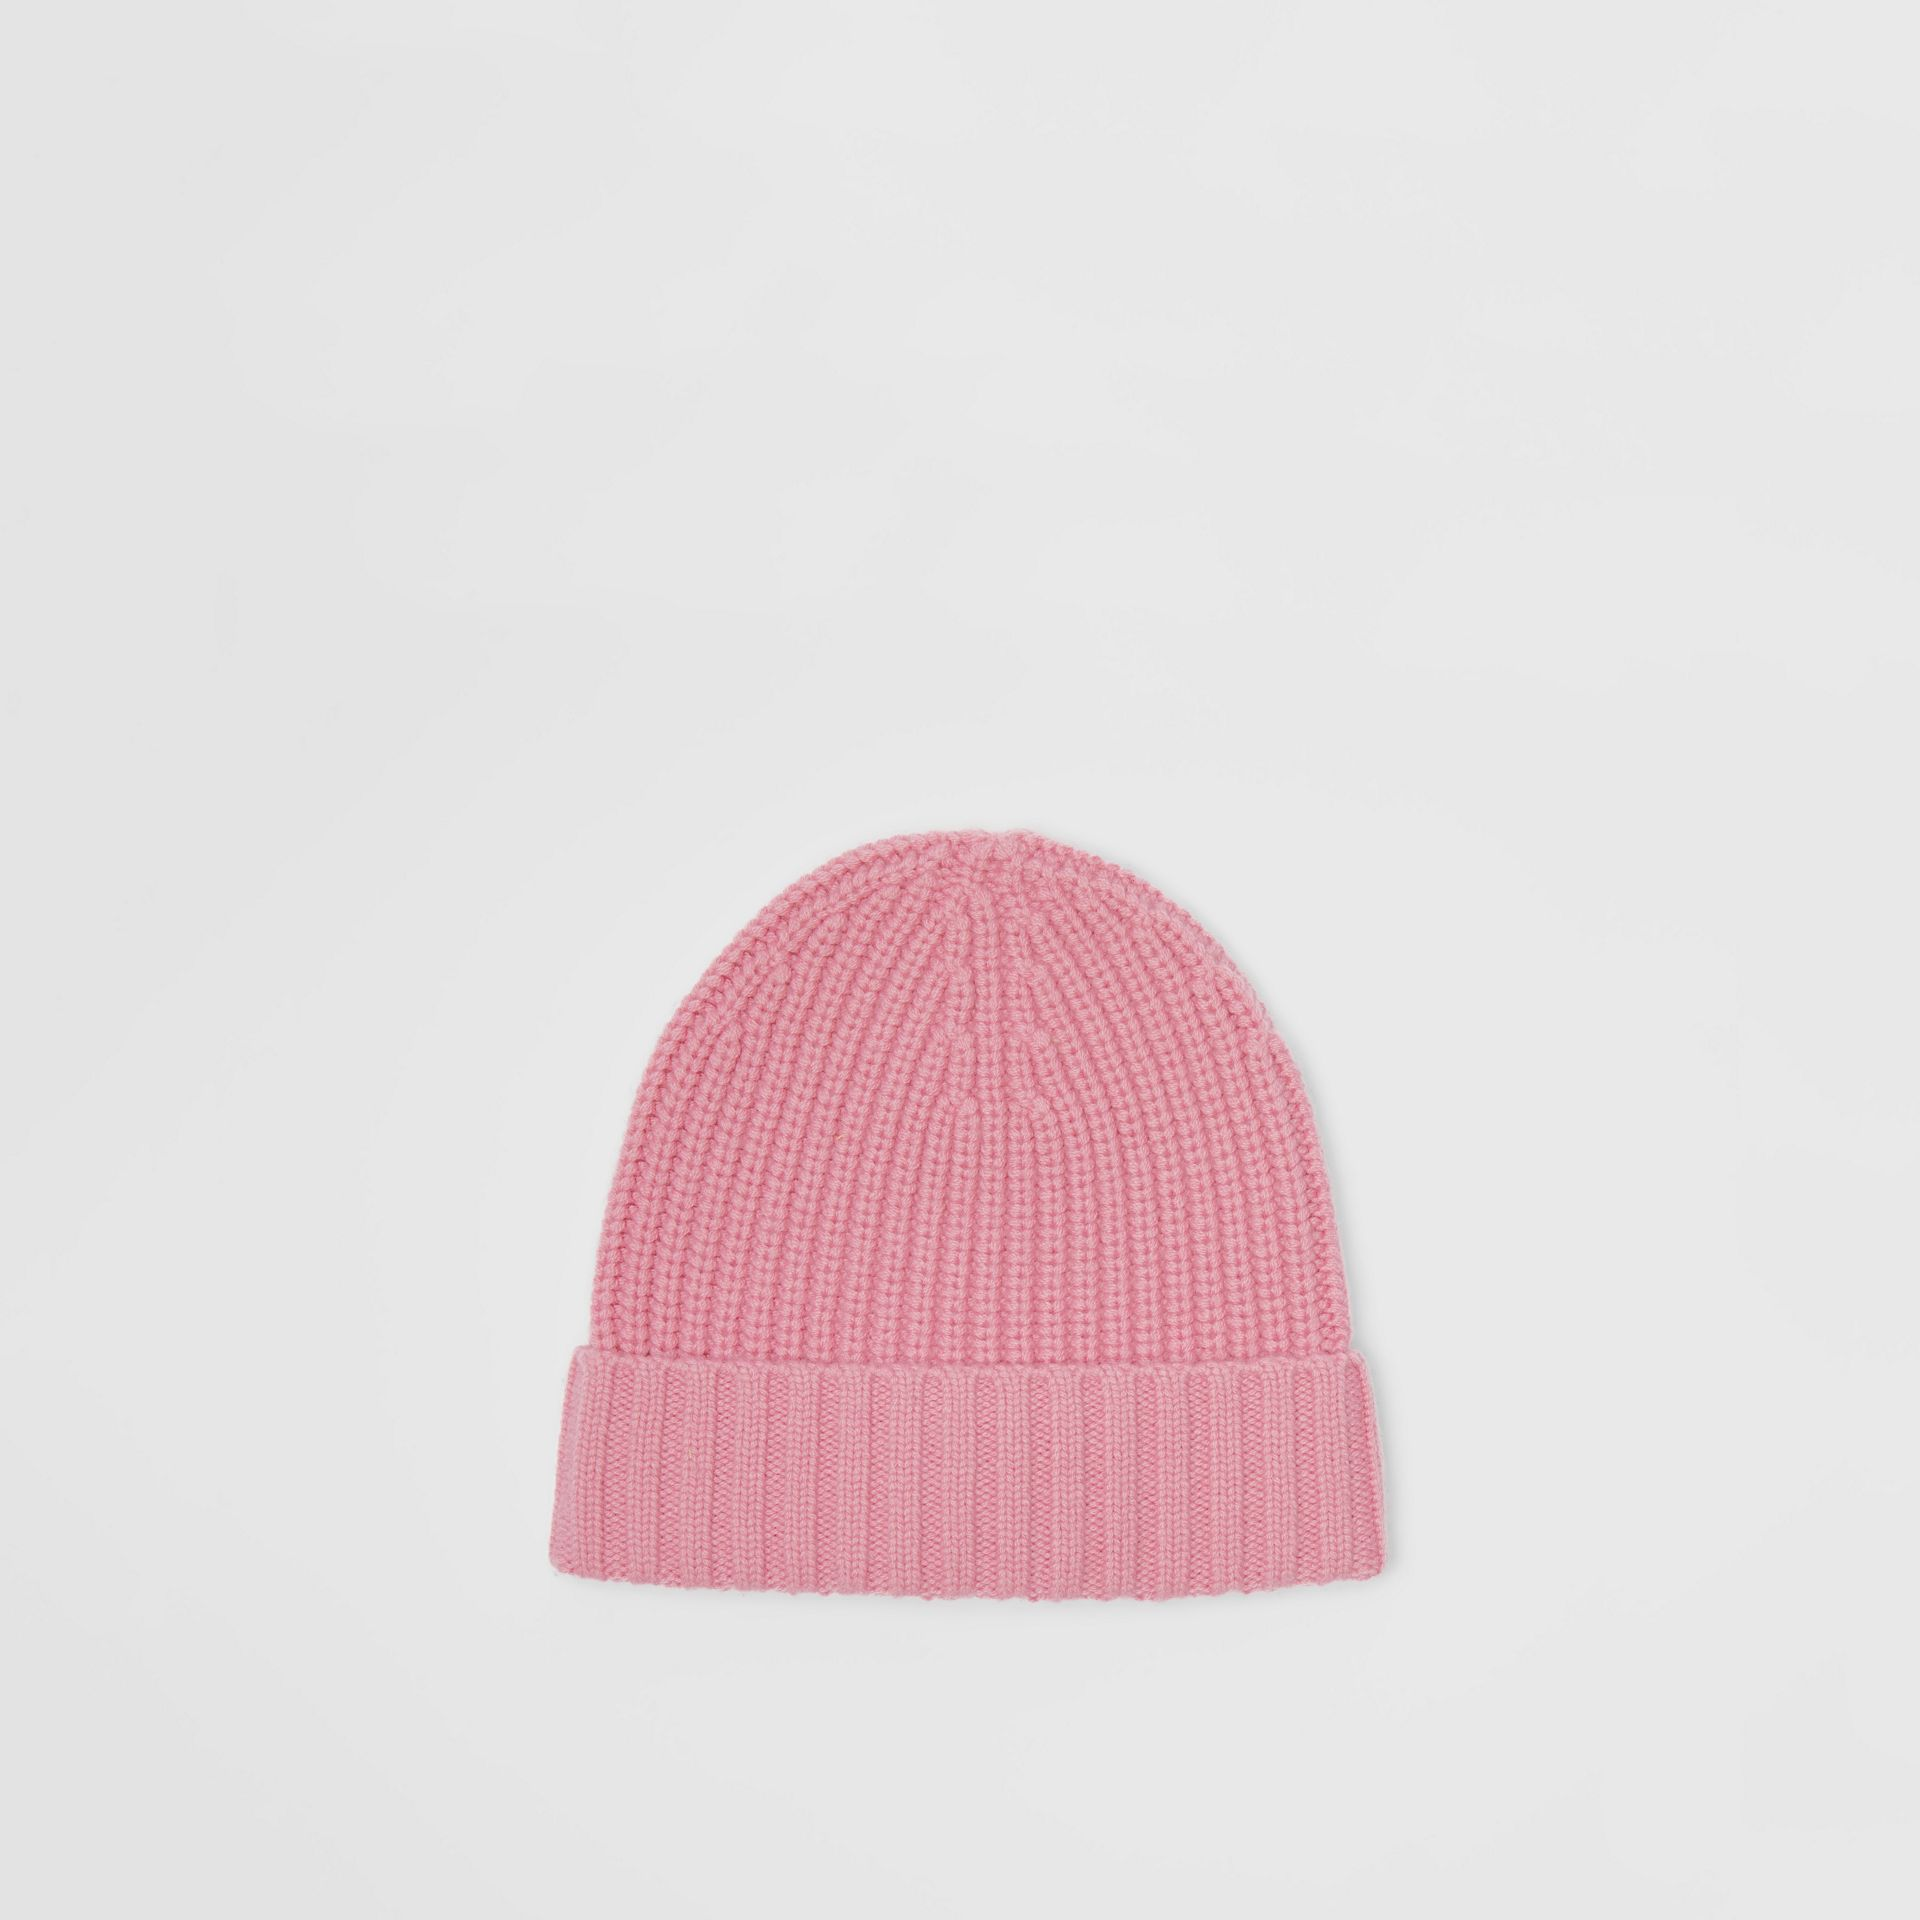 Embroidered Crest Rib Knit Wool Cashmere Beanie in Rose Pink | Burberry Hong Kong - gallery image 4